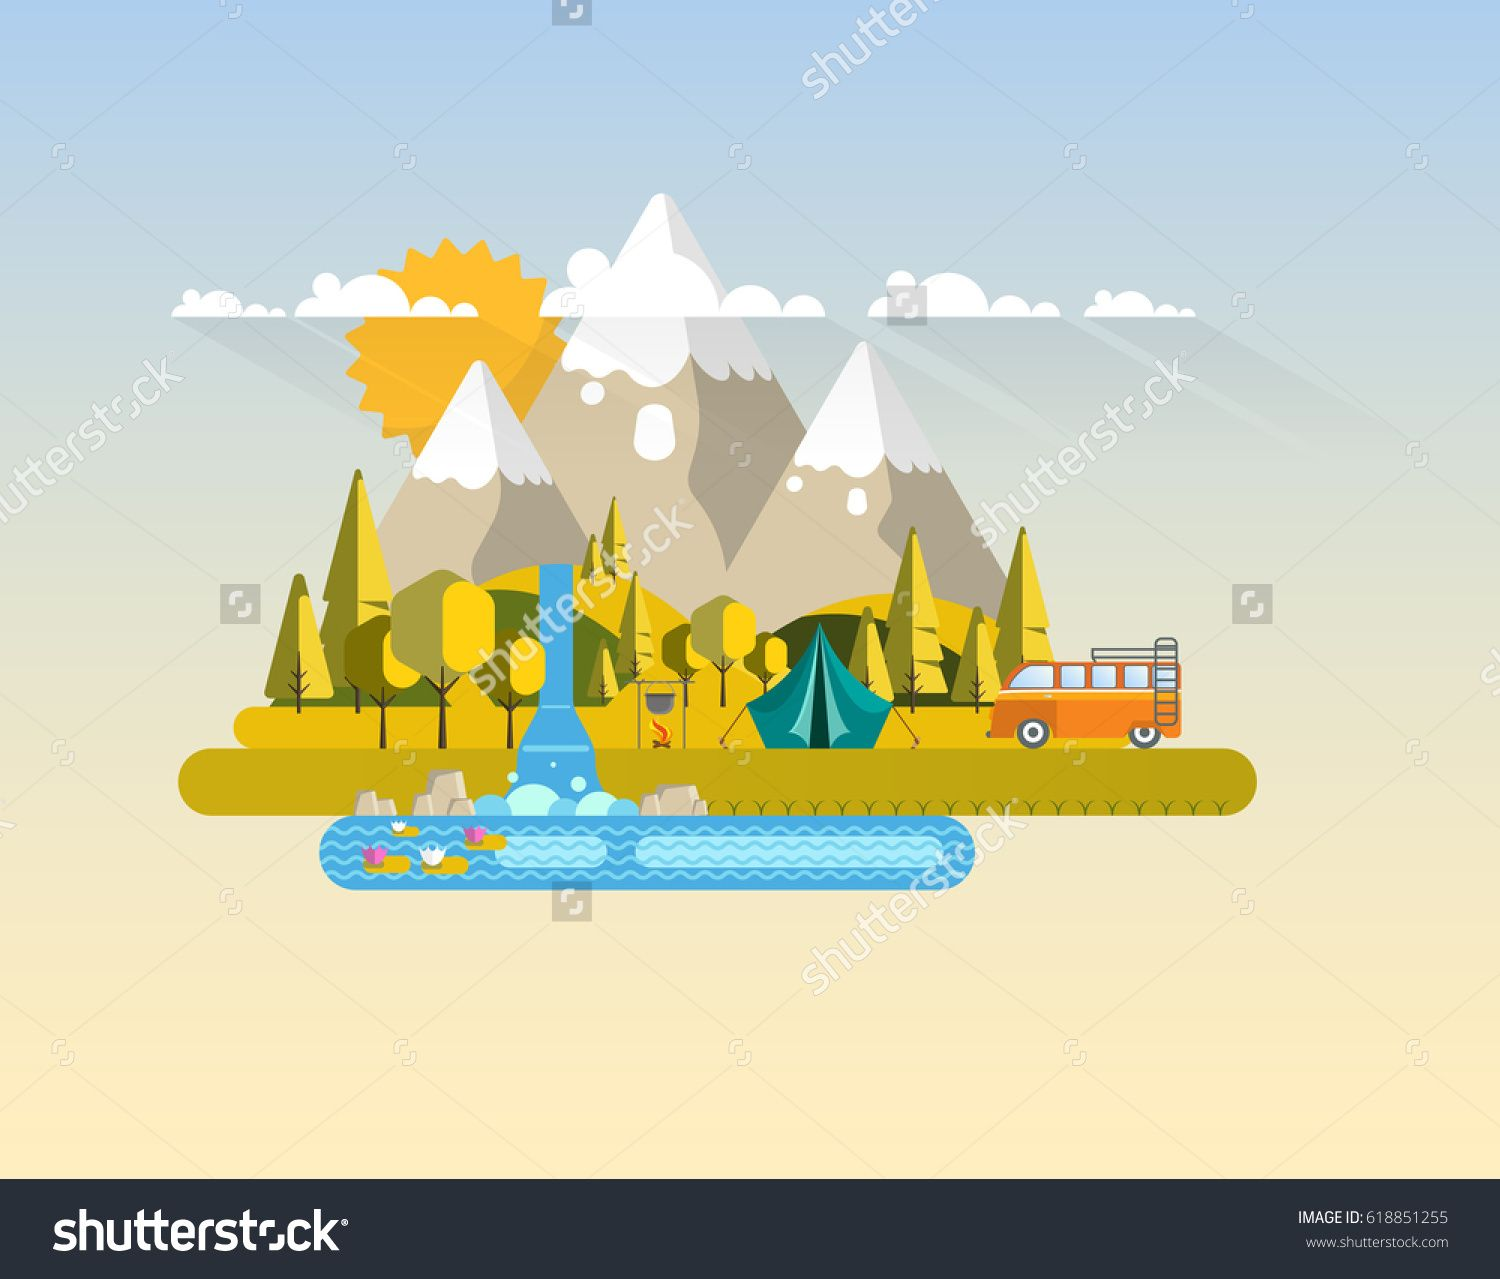 Hiking and Outdoor Recreation Scene in Flat Design. Abstract Landscape Vector Illustration.